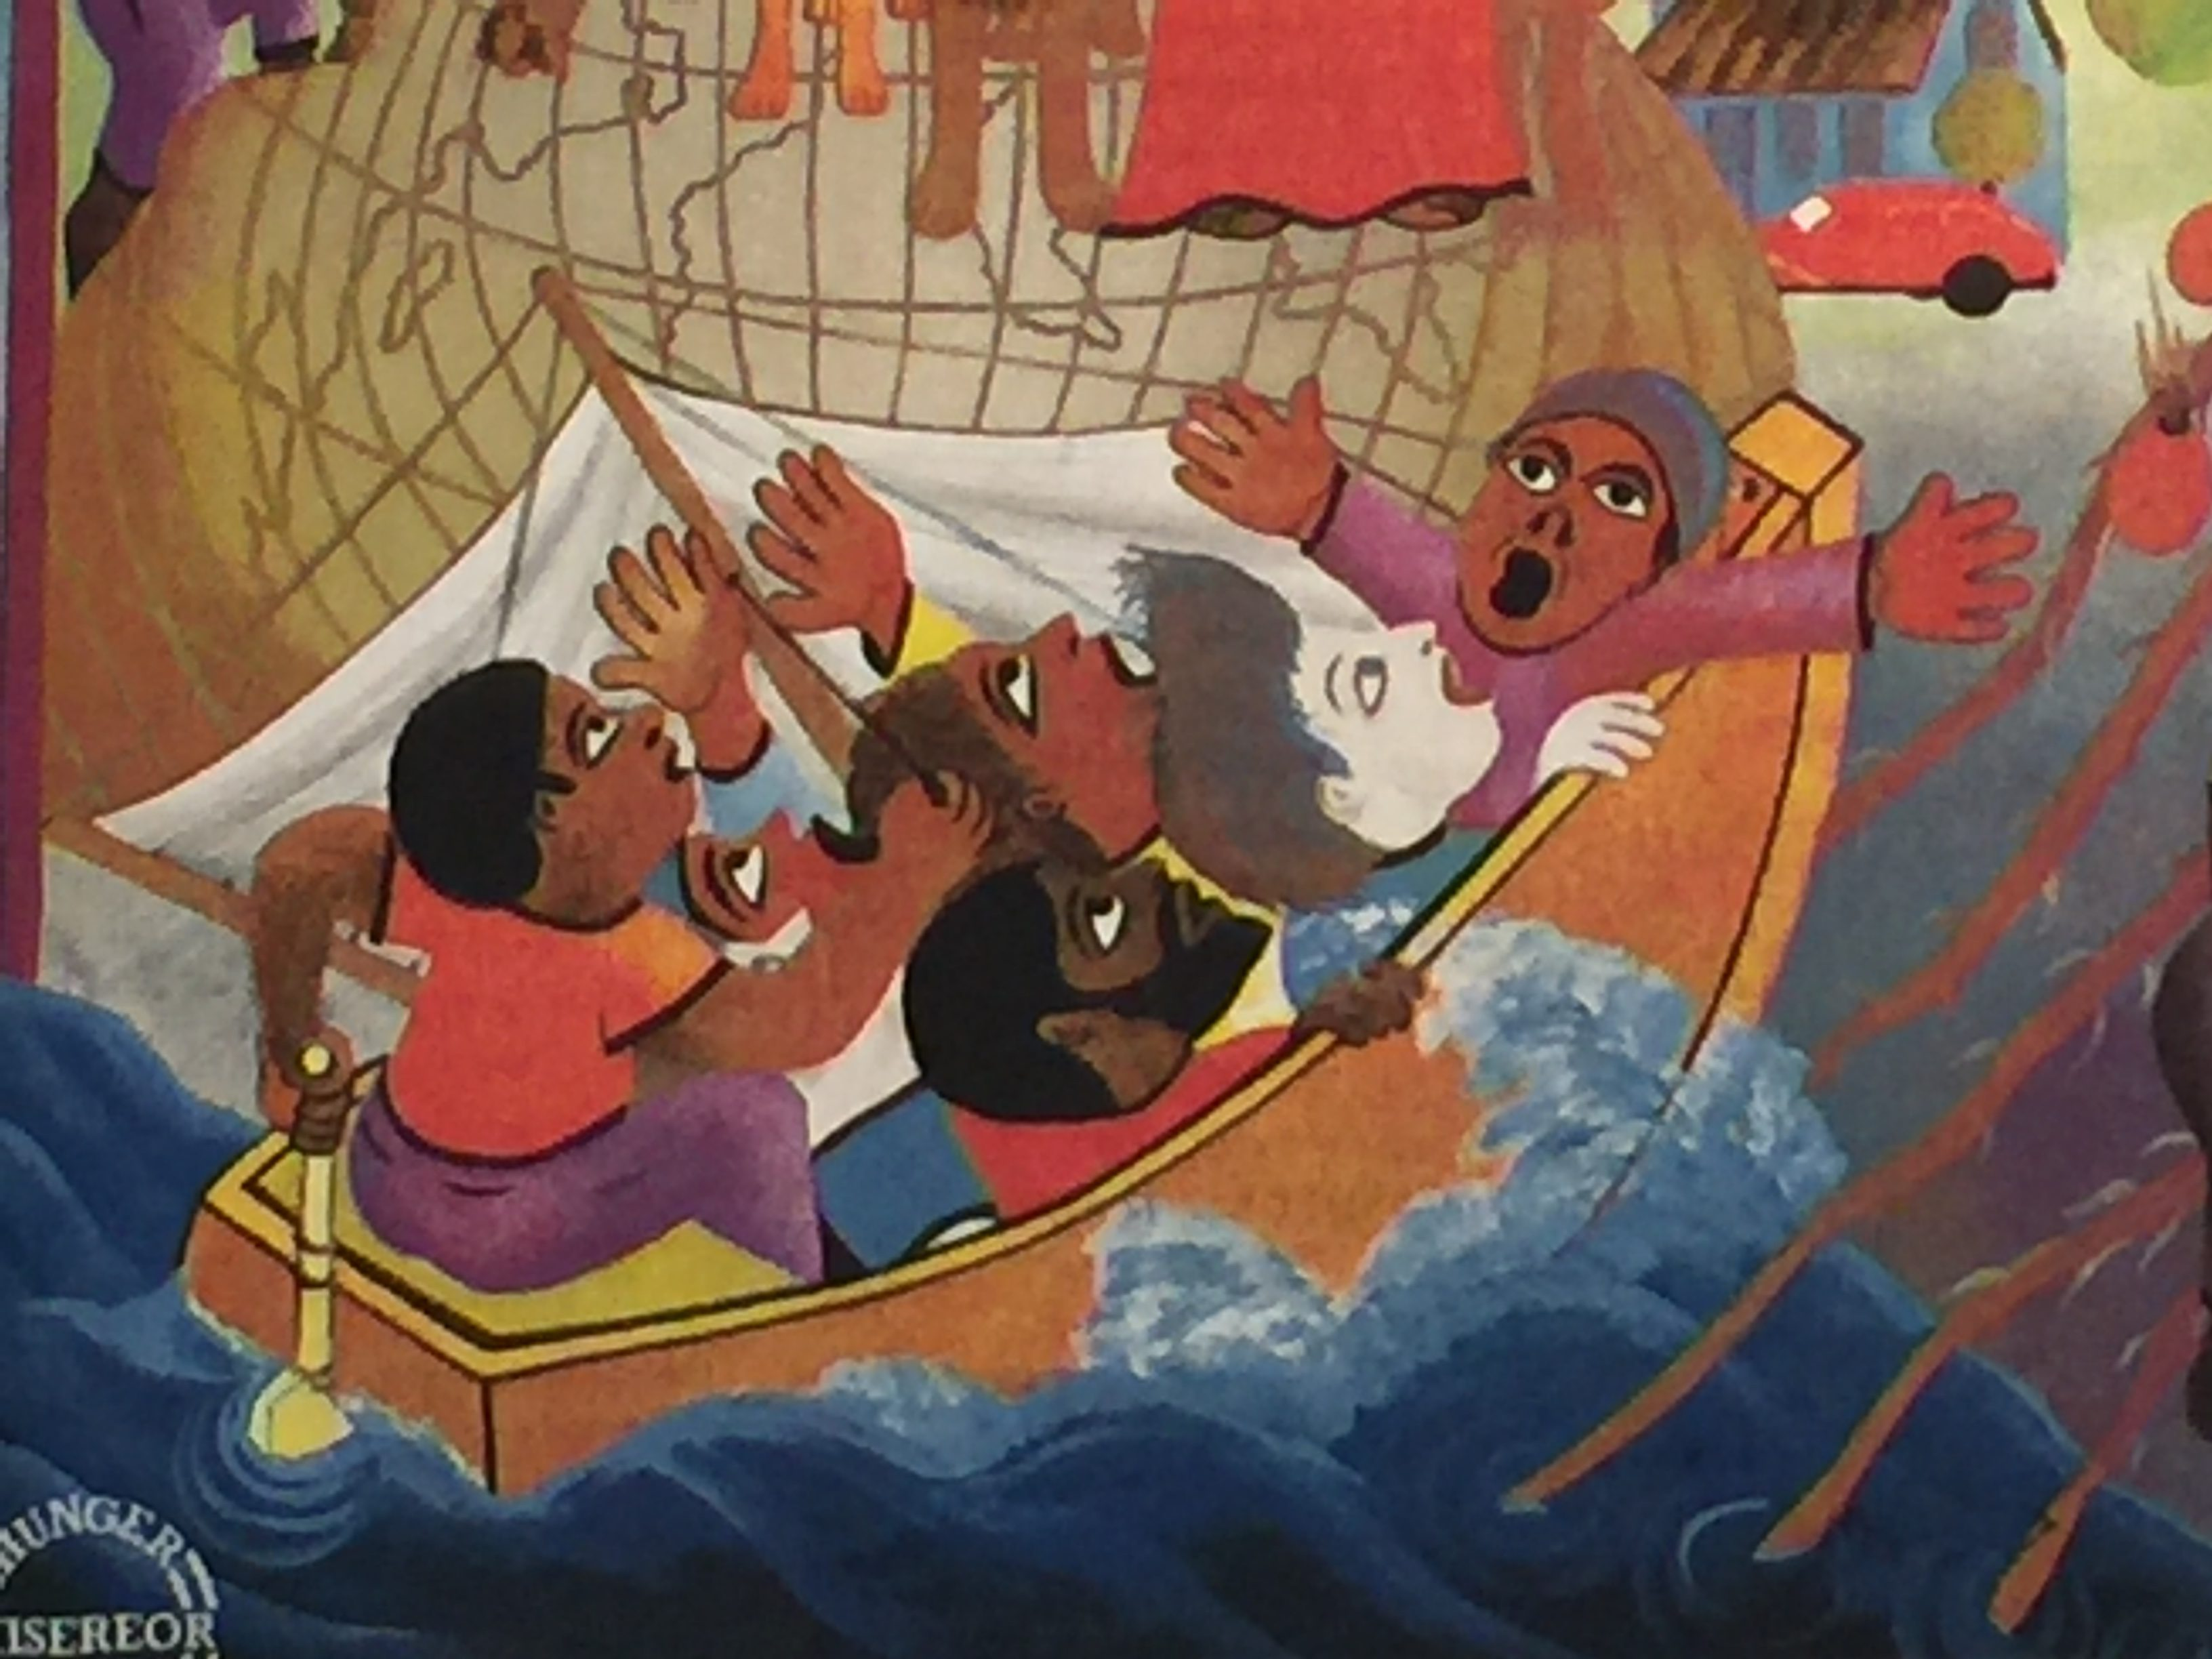 A portion of a painting of people on a boat in a rough sea